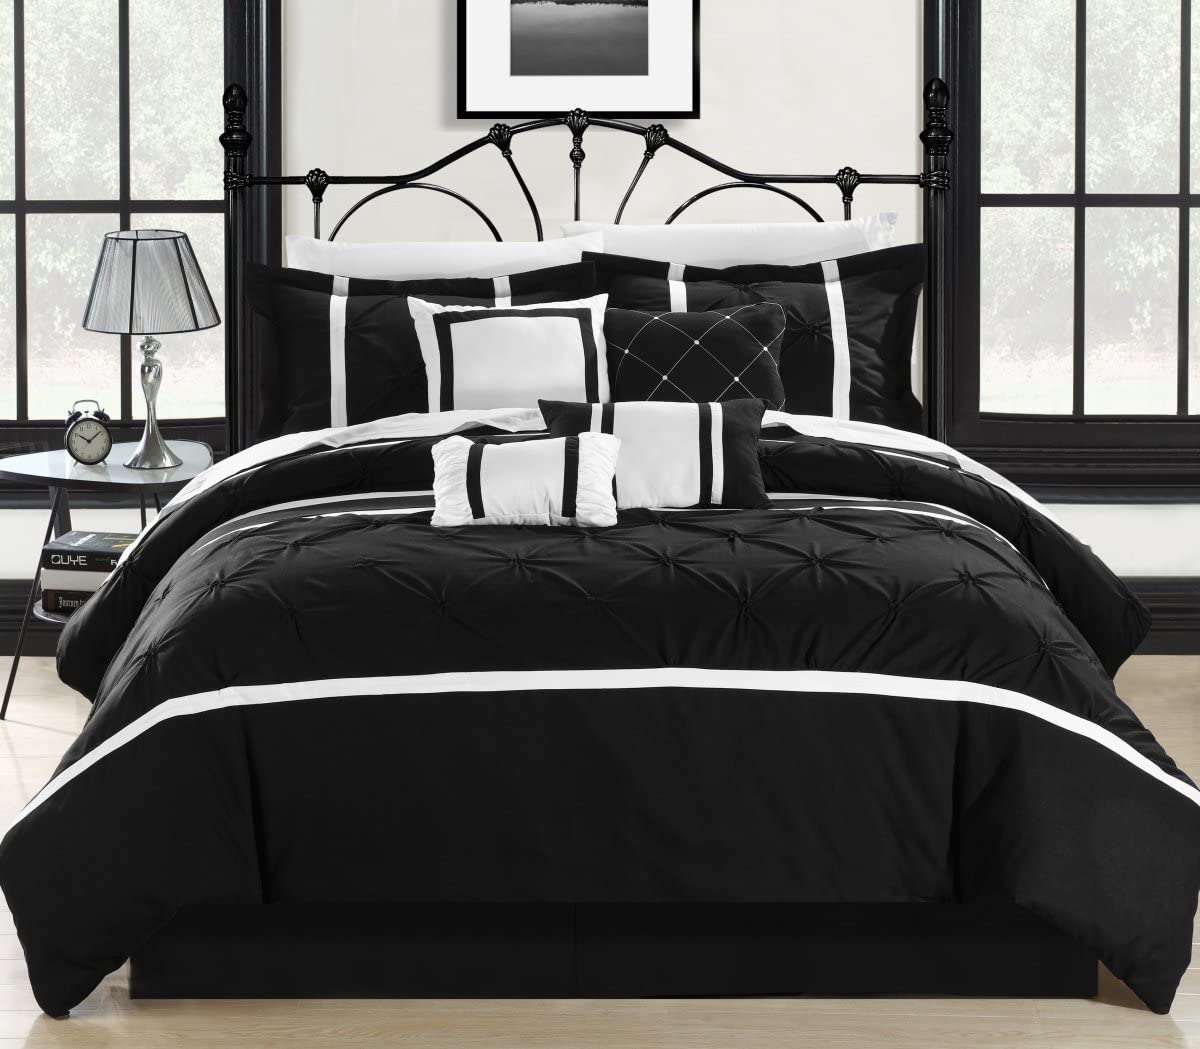 Chic Home 127-160-K-12-US Vermont Black & White King 12 Piece Bed in a Bag Comforter Set with 4 Piece Sheet Set